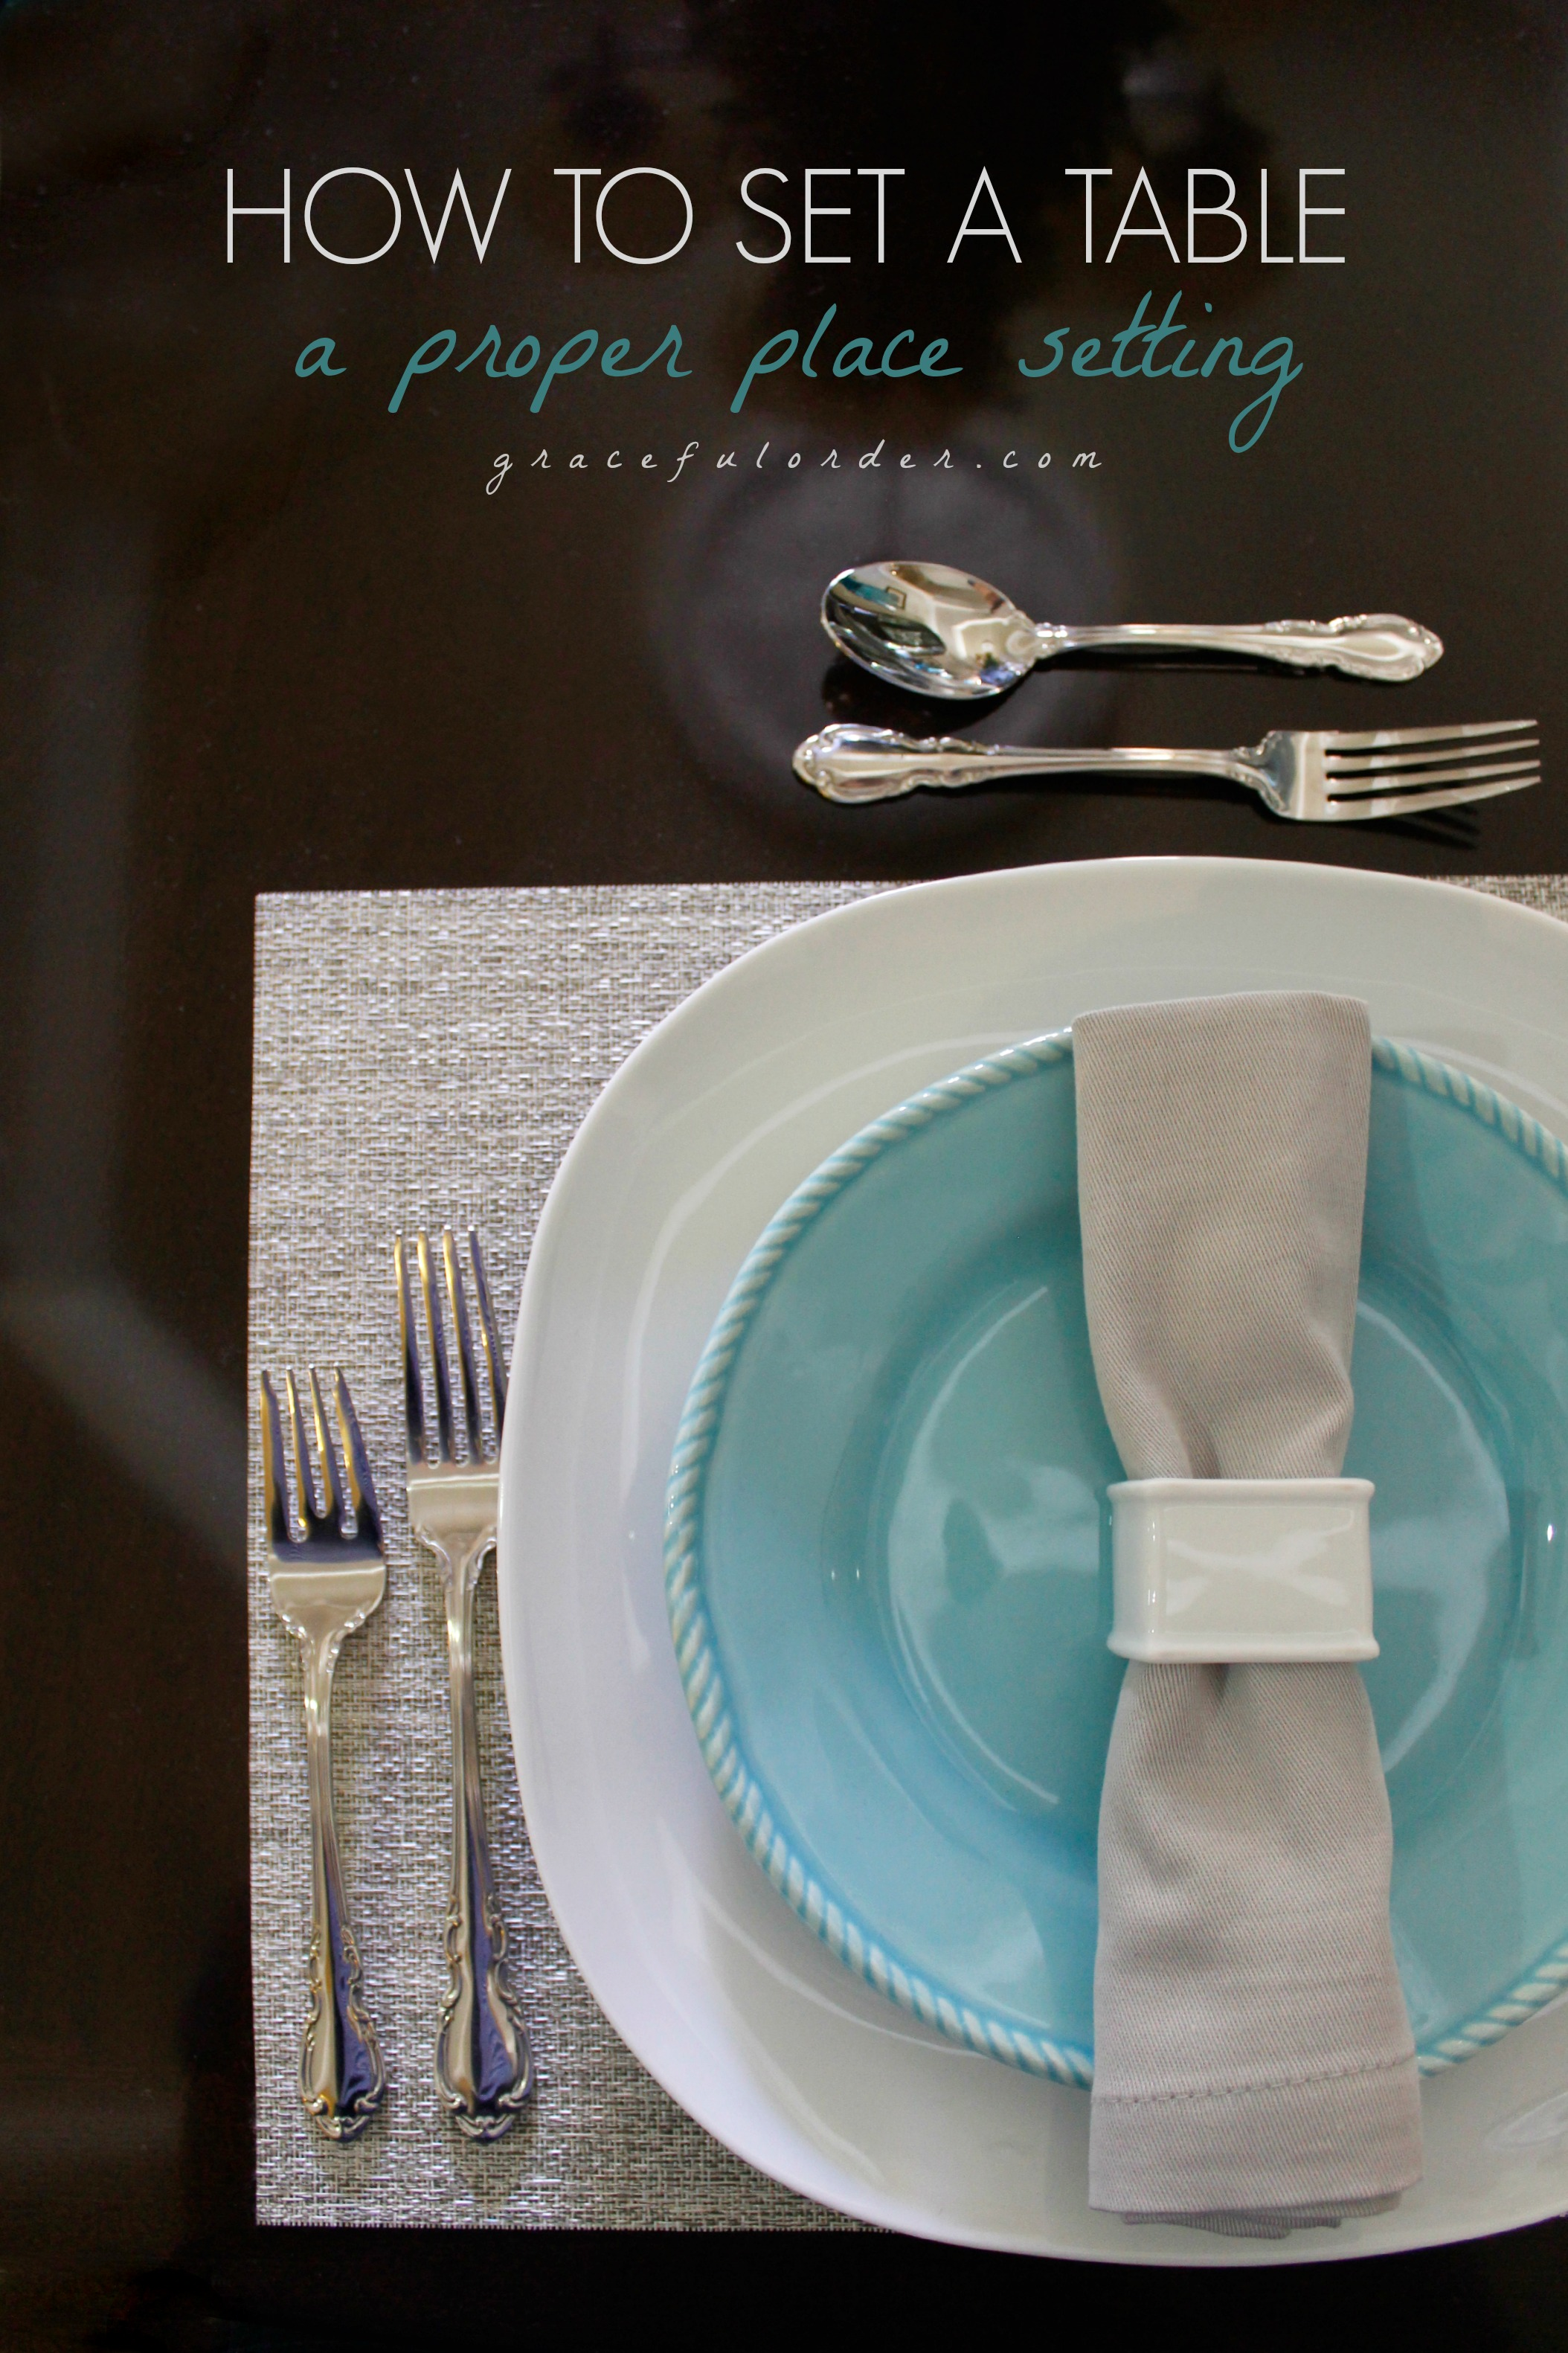 How to Set a Proper Table Setting & How to Set a Proper Table Setting - Graceful Order